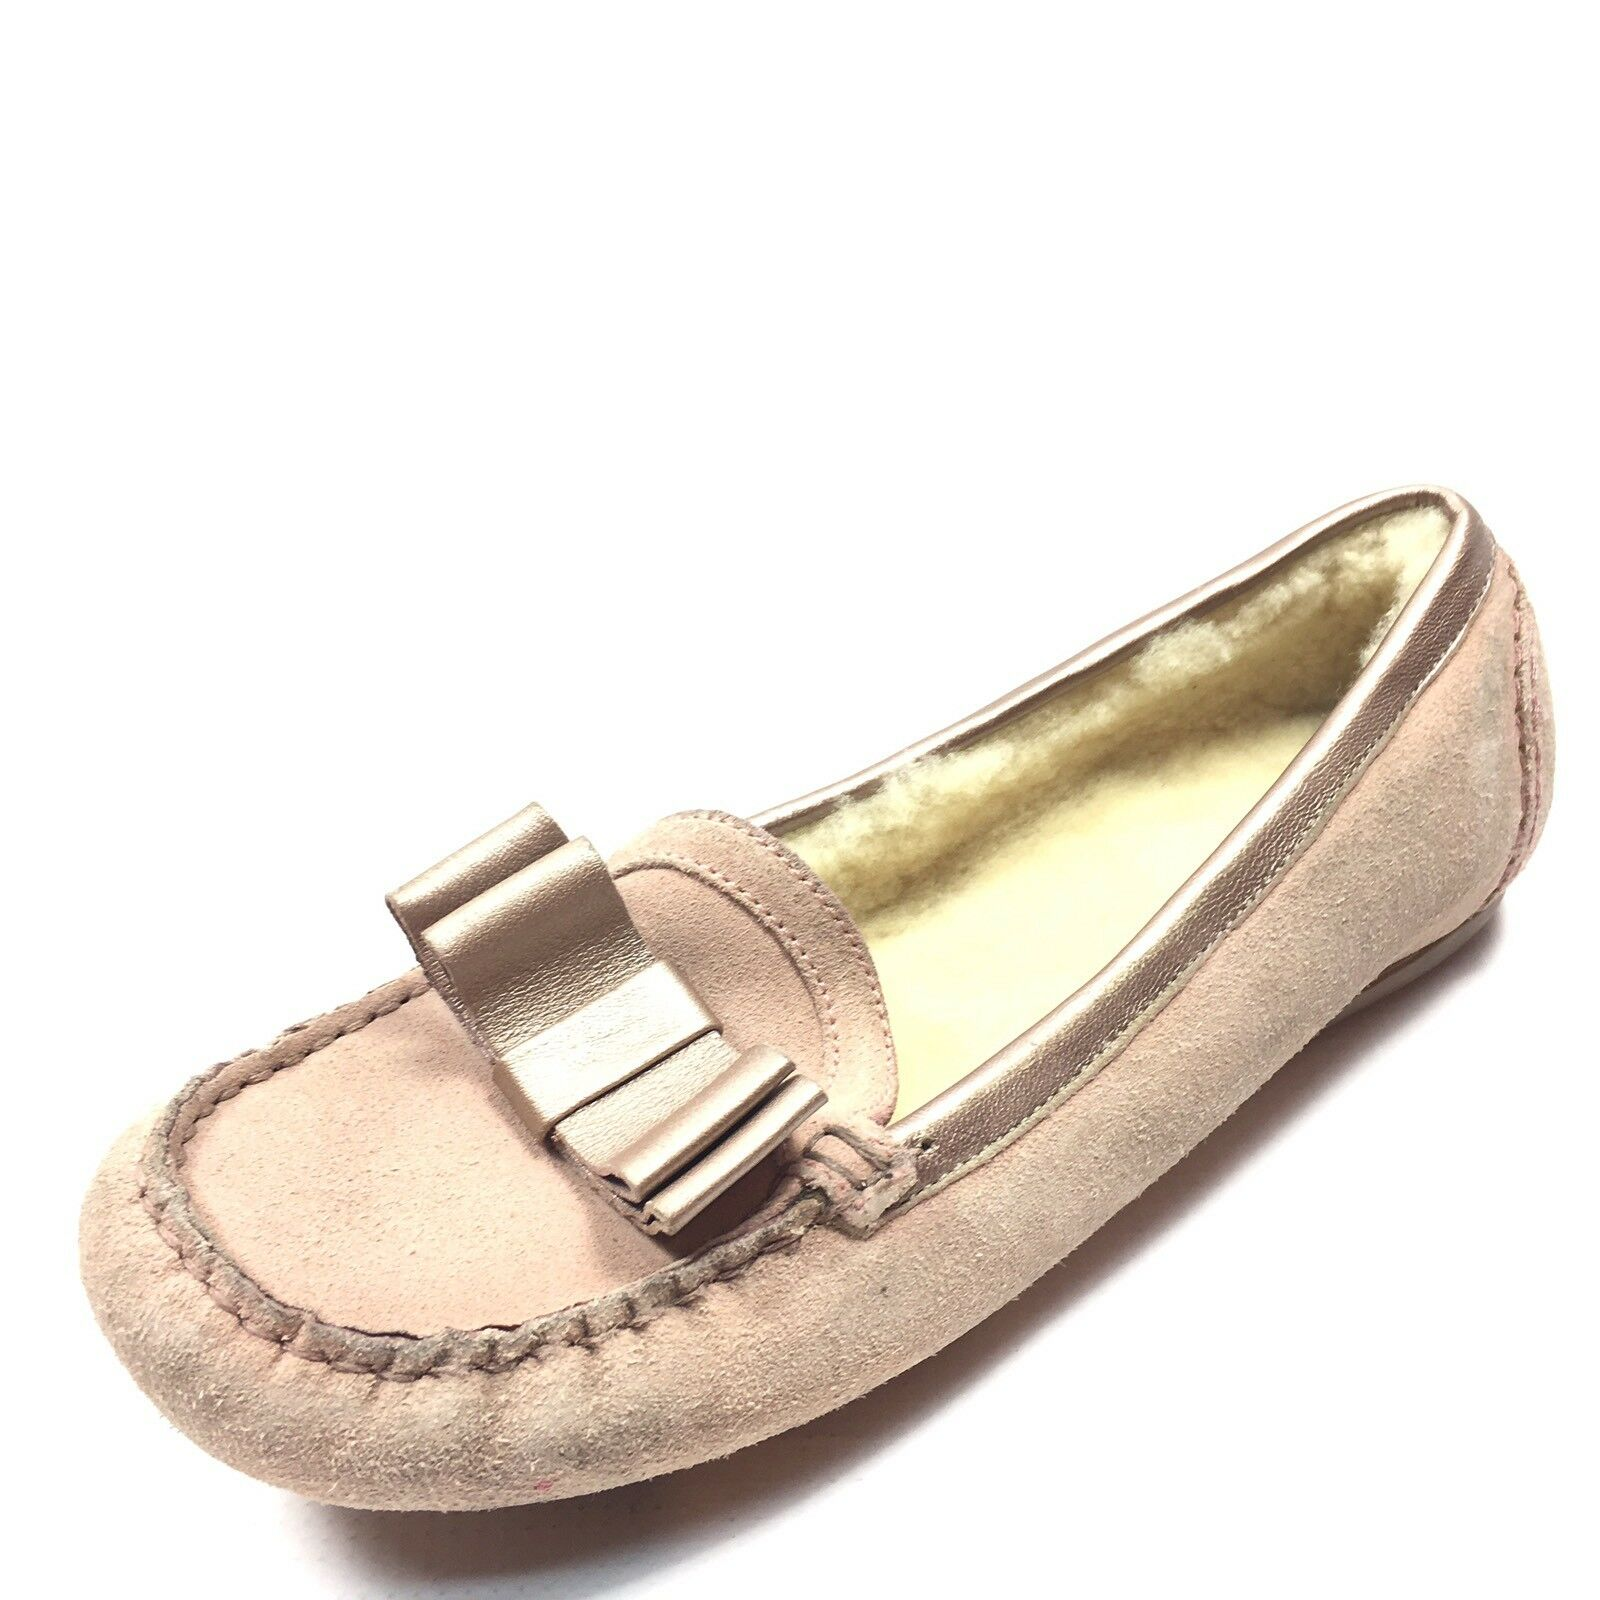 Cole Haan Women's Beige Suede Moccasin Loafers shoes Size 6.5 M